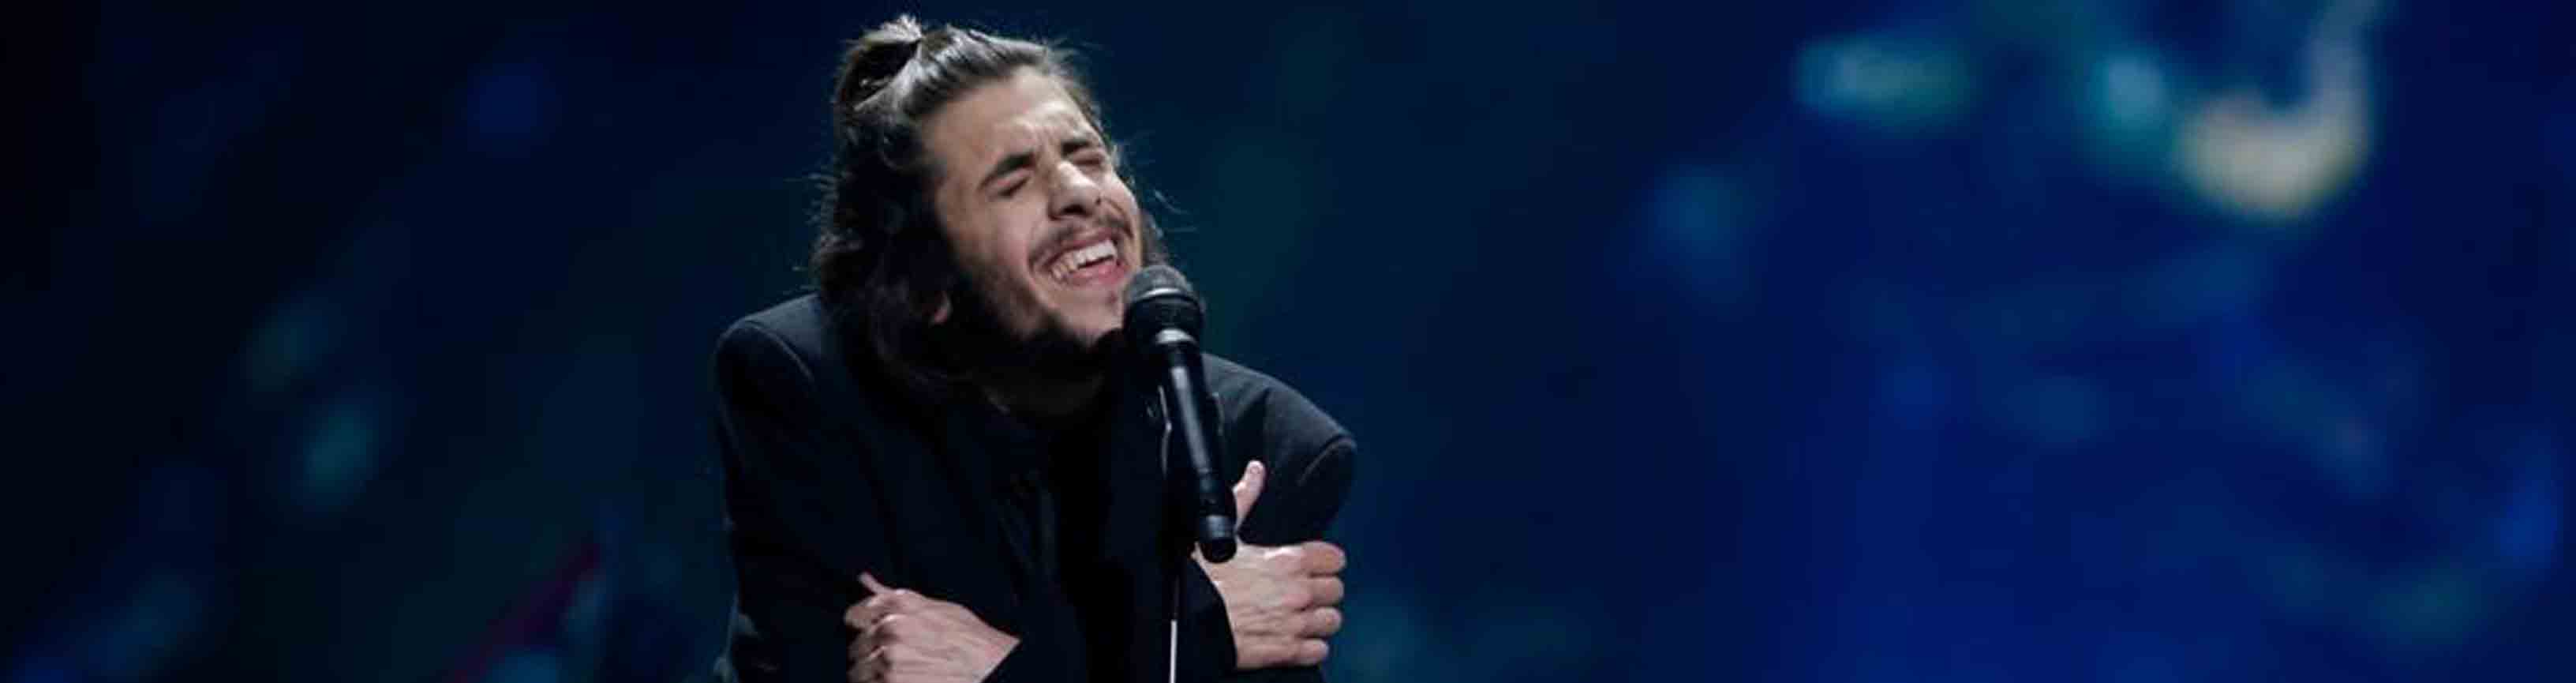 Image Salvador Sobral triumph in Europe